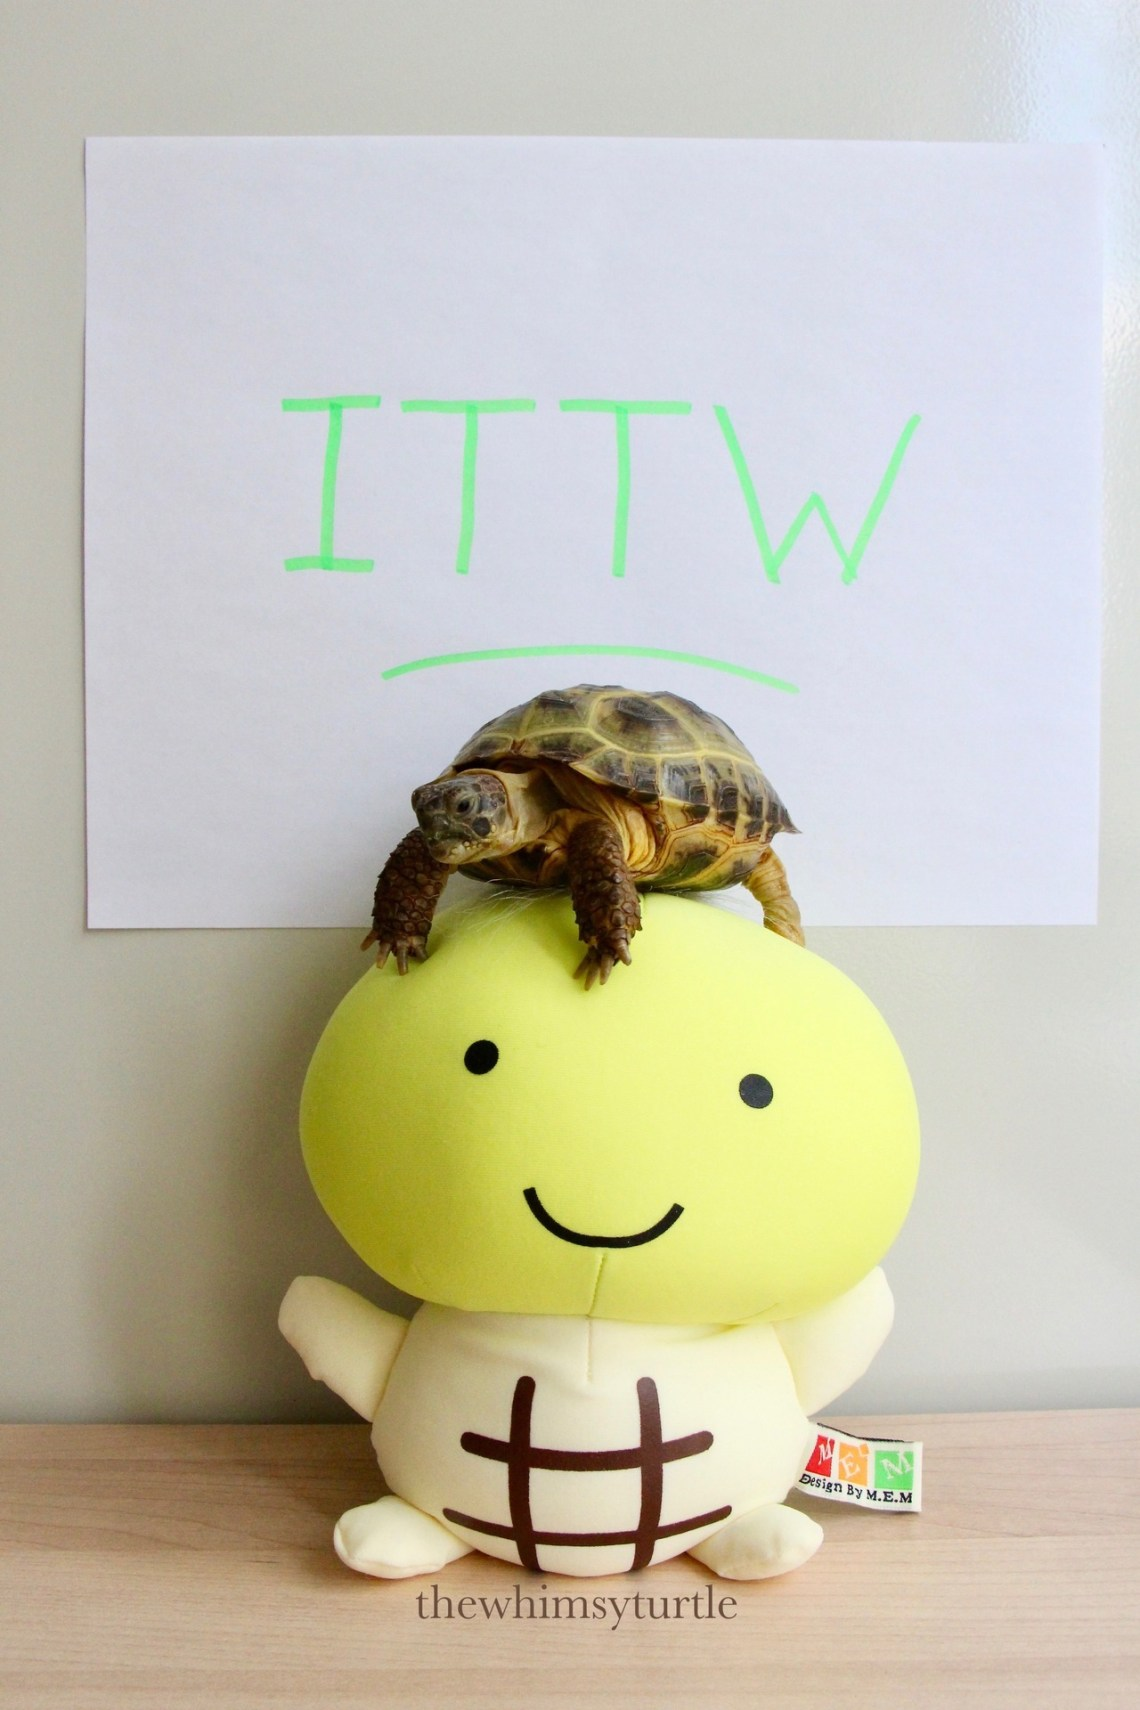 It's the one and only International Turtle and Tortoise Week!